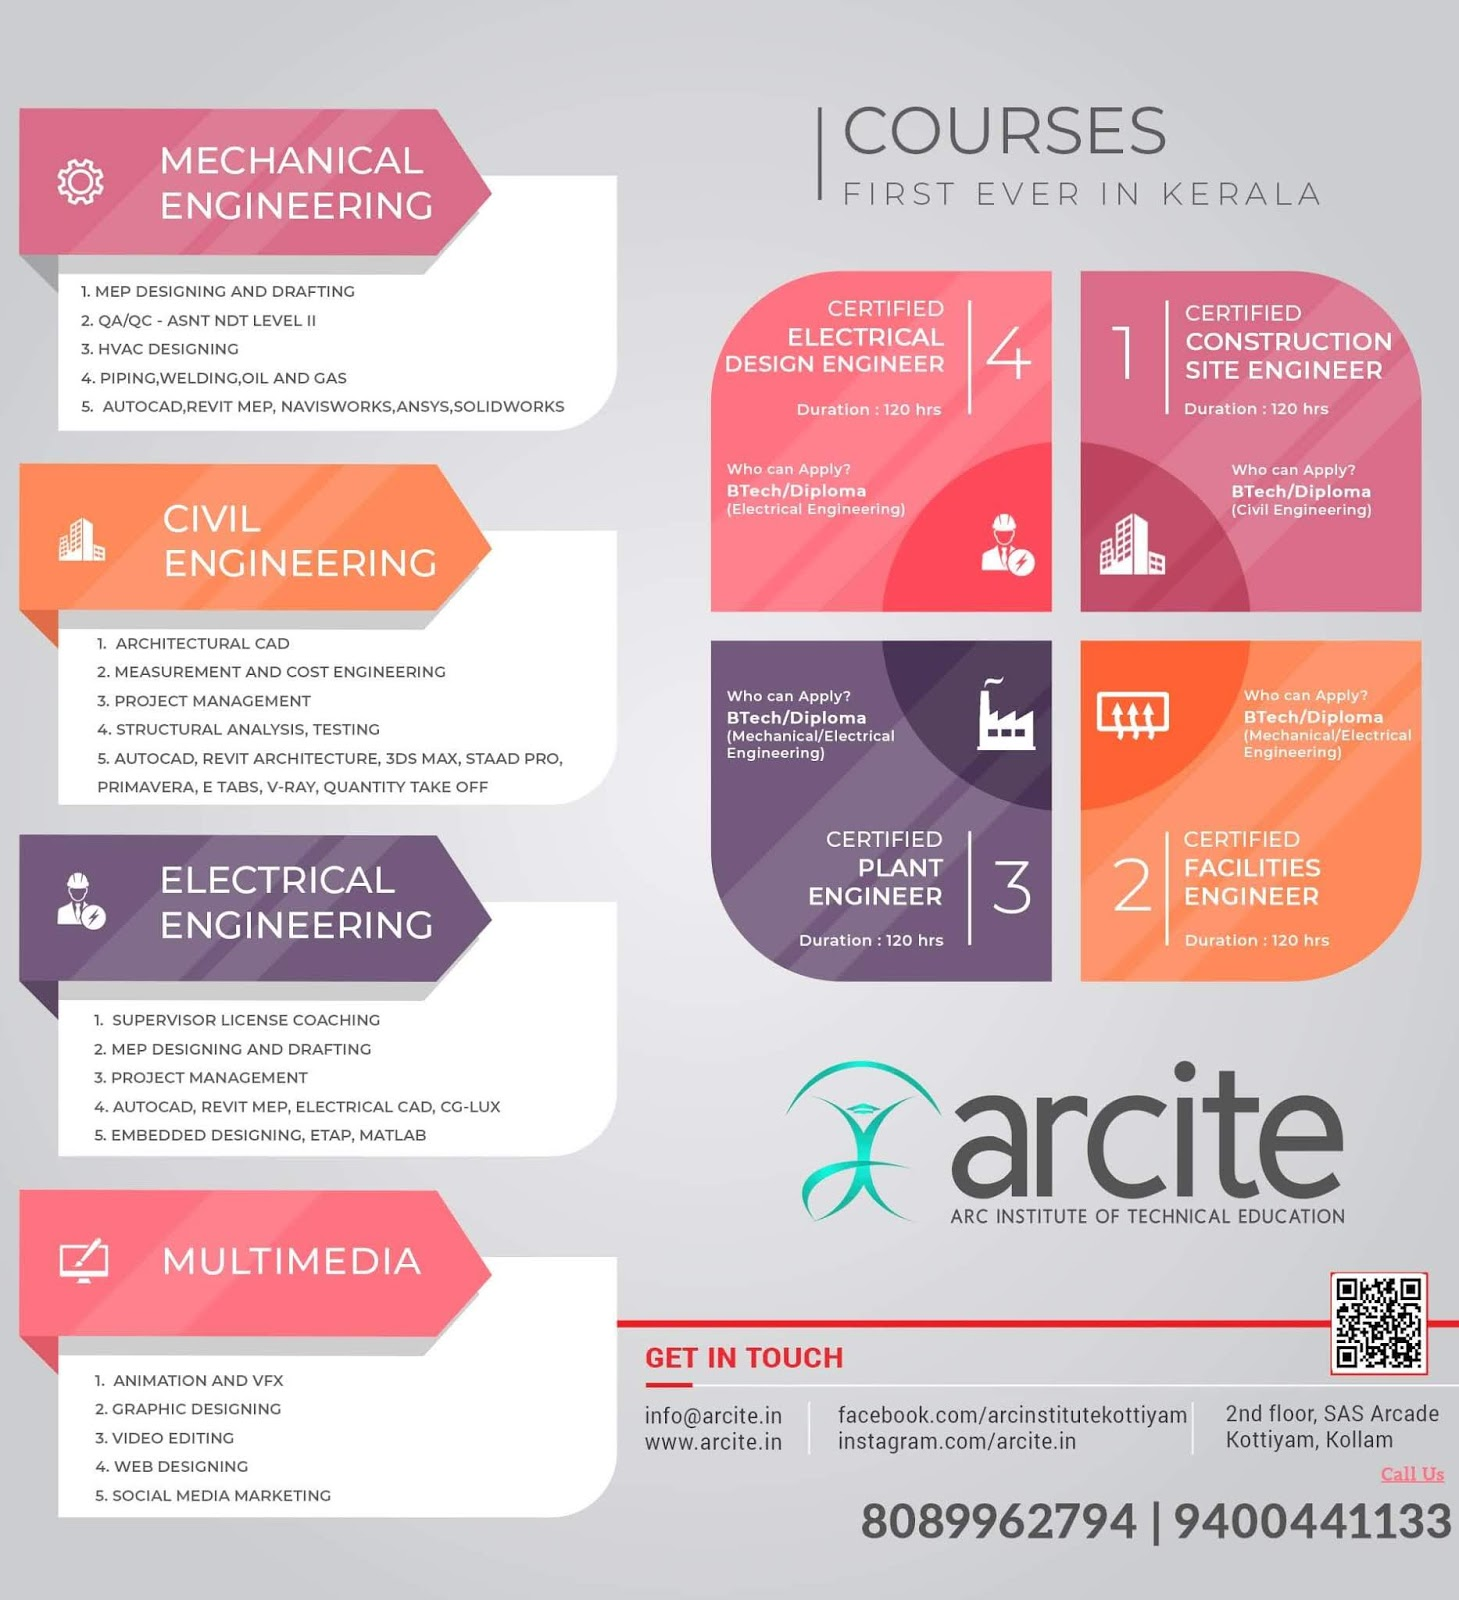 arcite-institute-of-technology